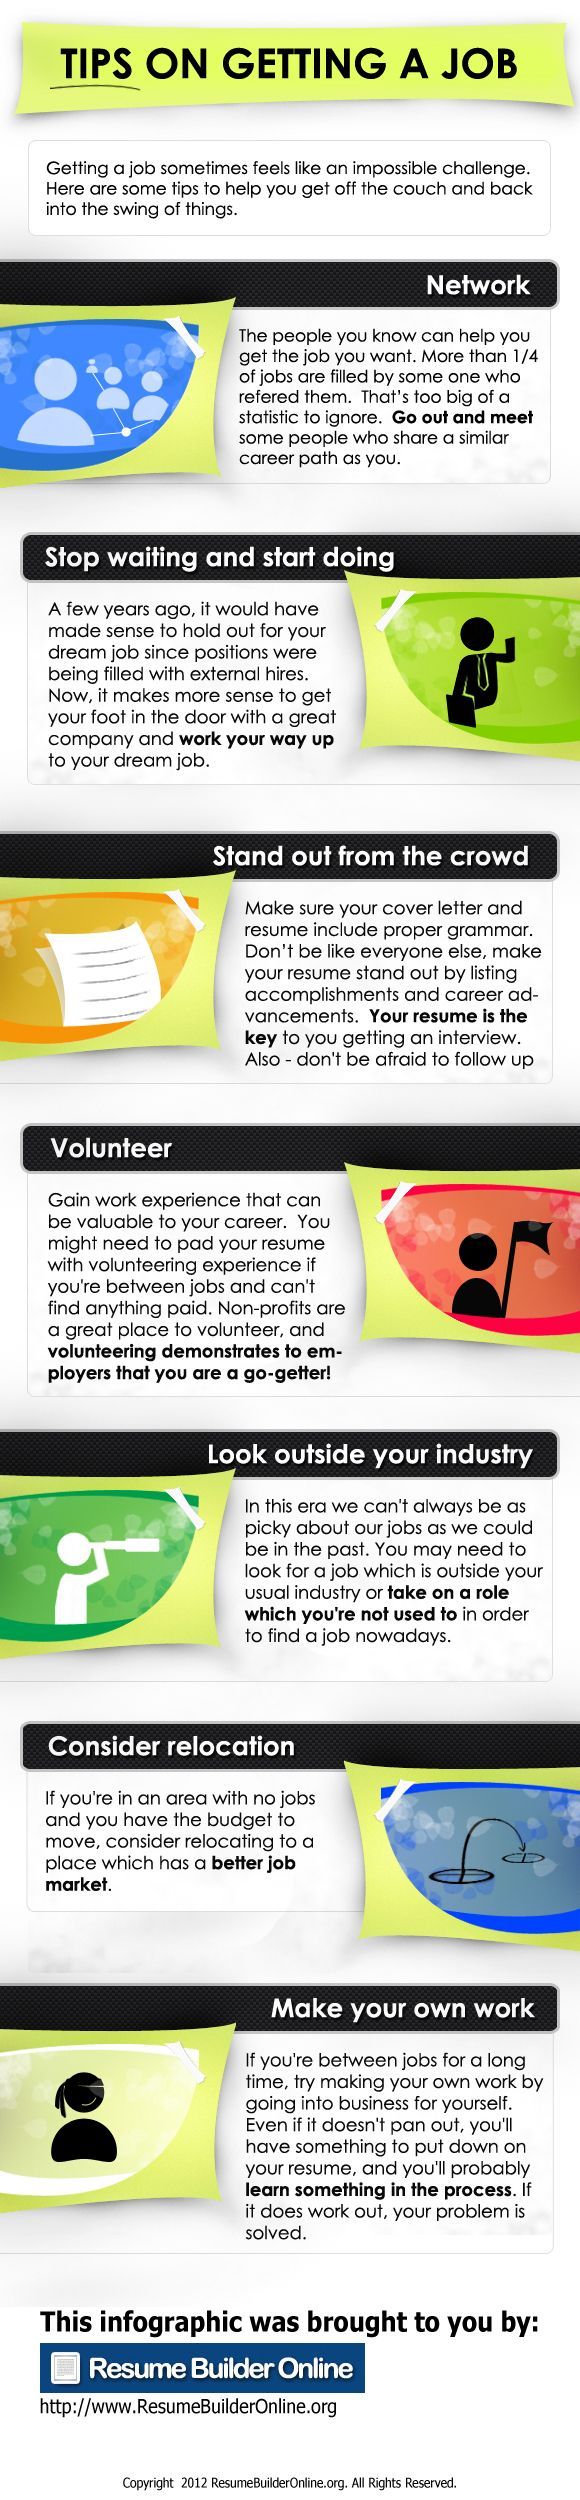 best images about job search overview getting a job can be a difficult task and tough situation for some people so it is good to know the basics of job searching this useful infographic shows